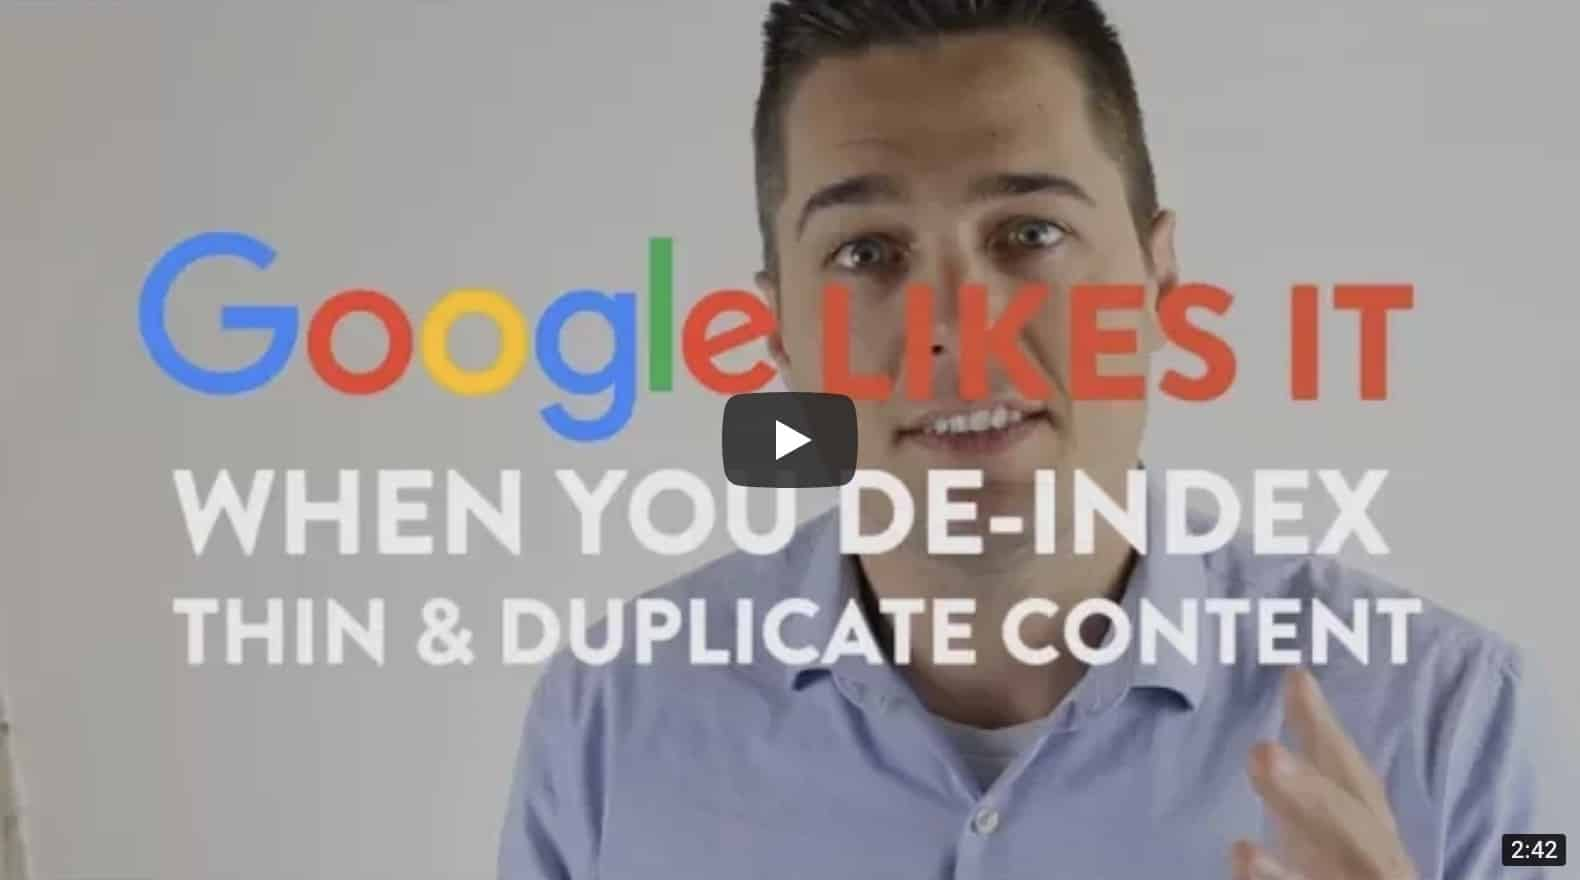 De-index thin and Duplicate Content for SEO - Google Likes it video